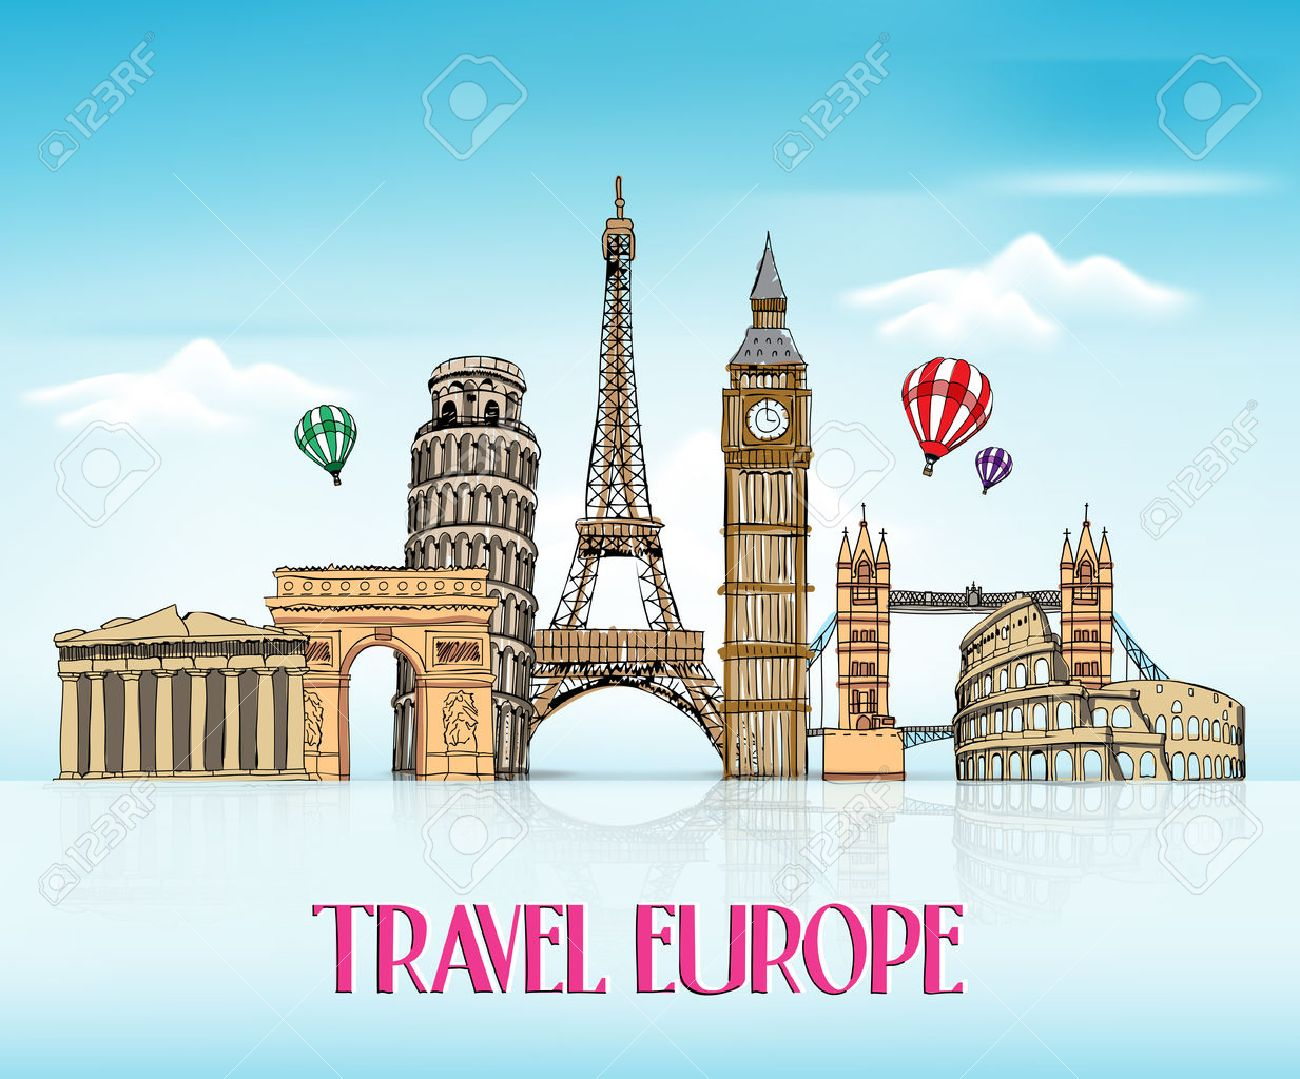 Travel Europe Hand Drawing With Famous Landmarks And Places In 1300x1079